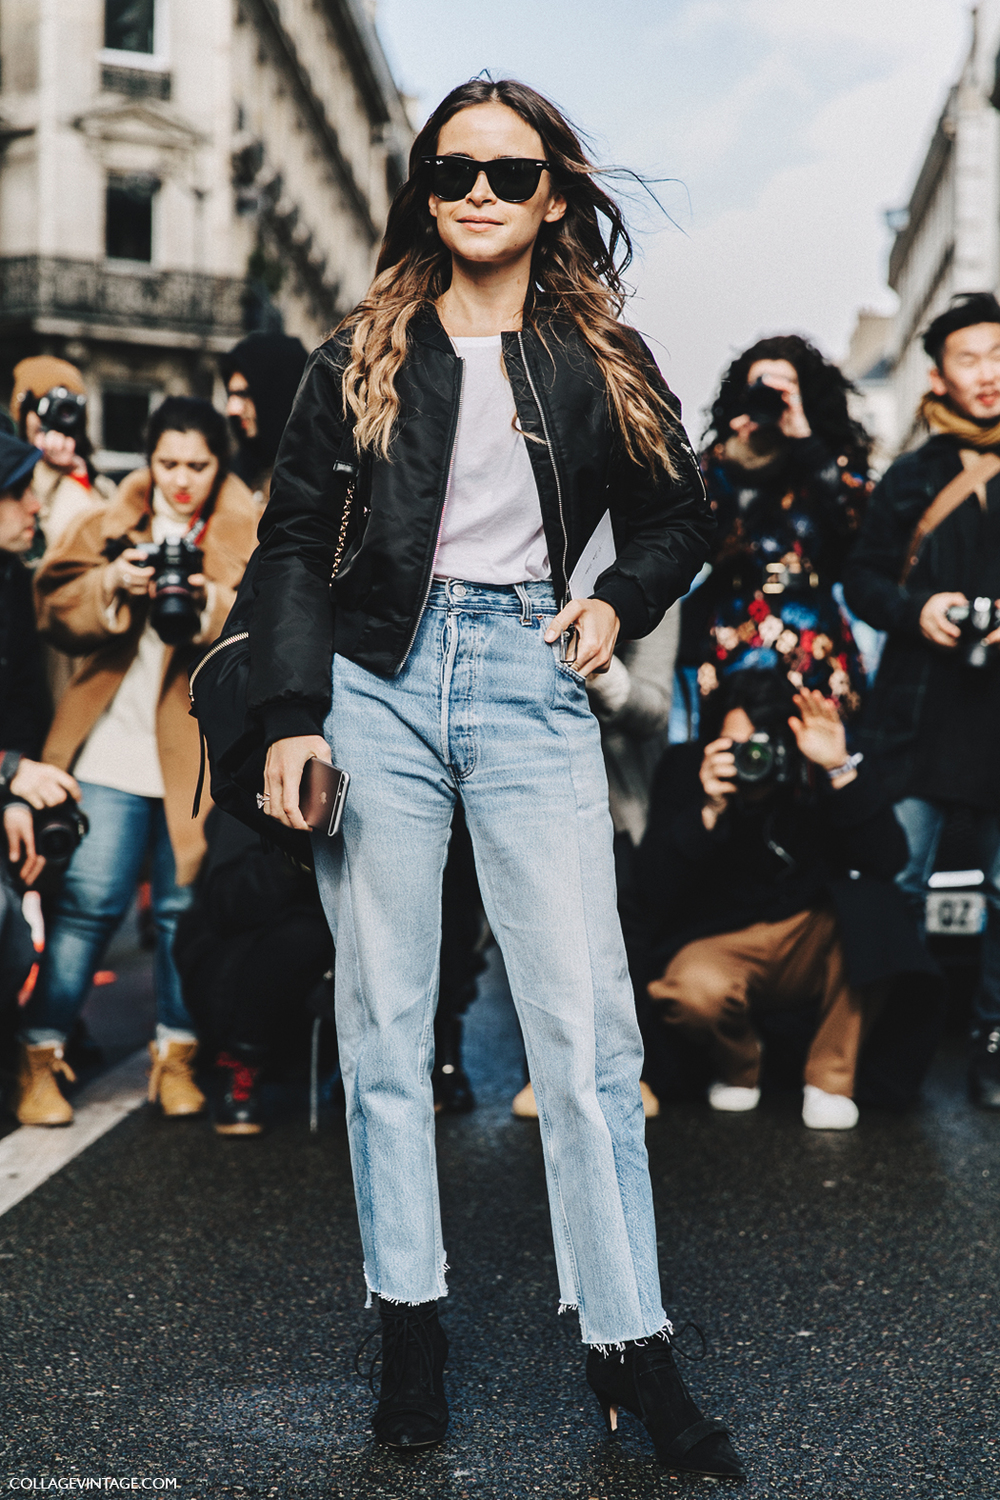 PFW-Paris_Fashion_Week_Fall_2016-Street_Style-Collage_Vintage-Miroslava_Duma-Vetements-Jeans-Backpack-Bomber-6.jpg